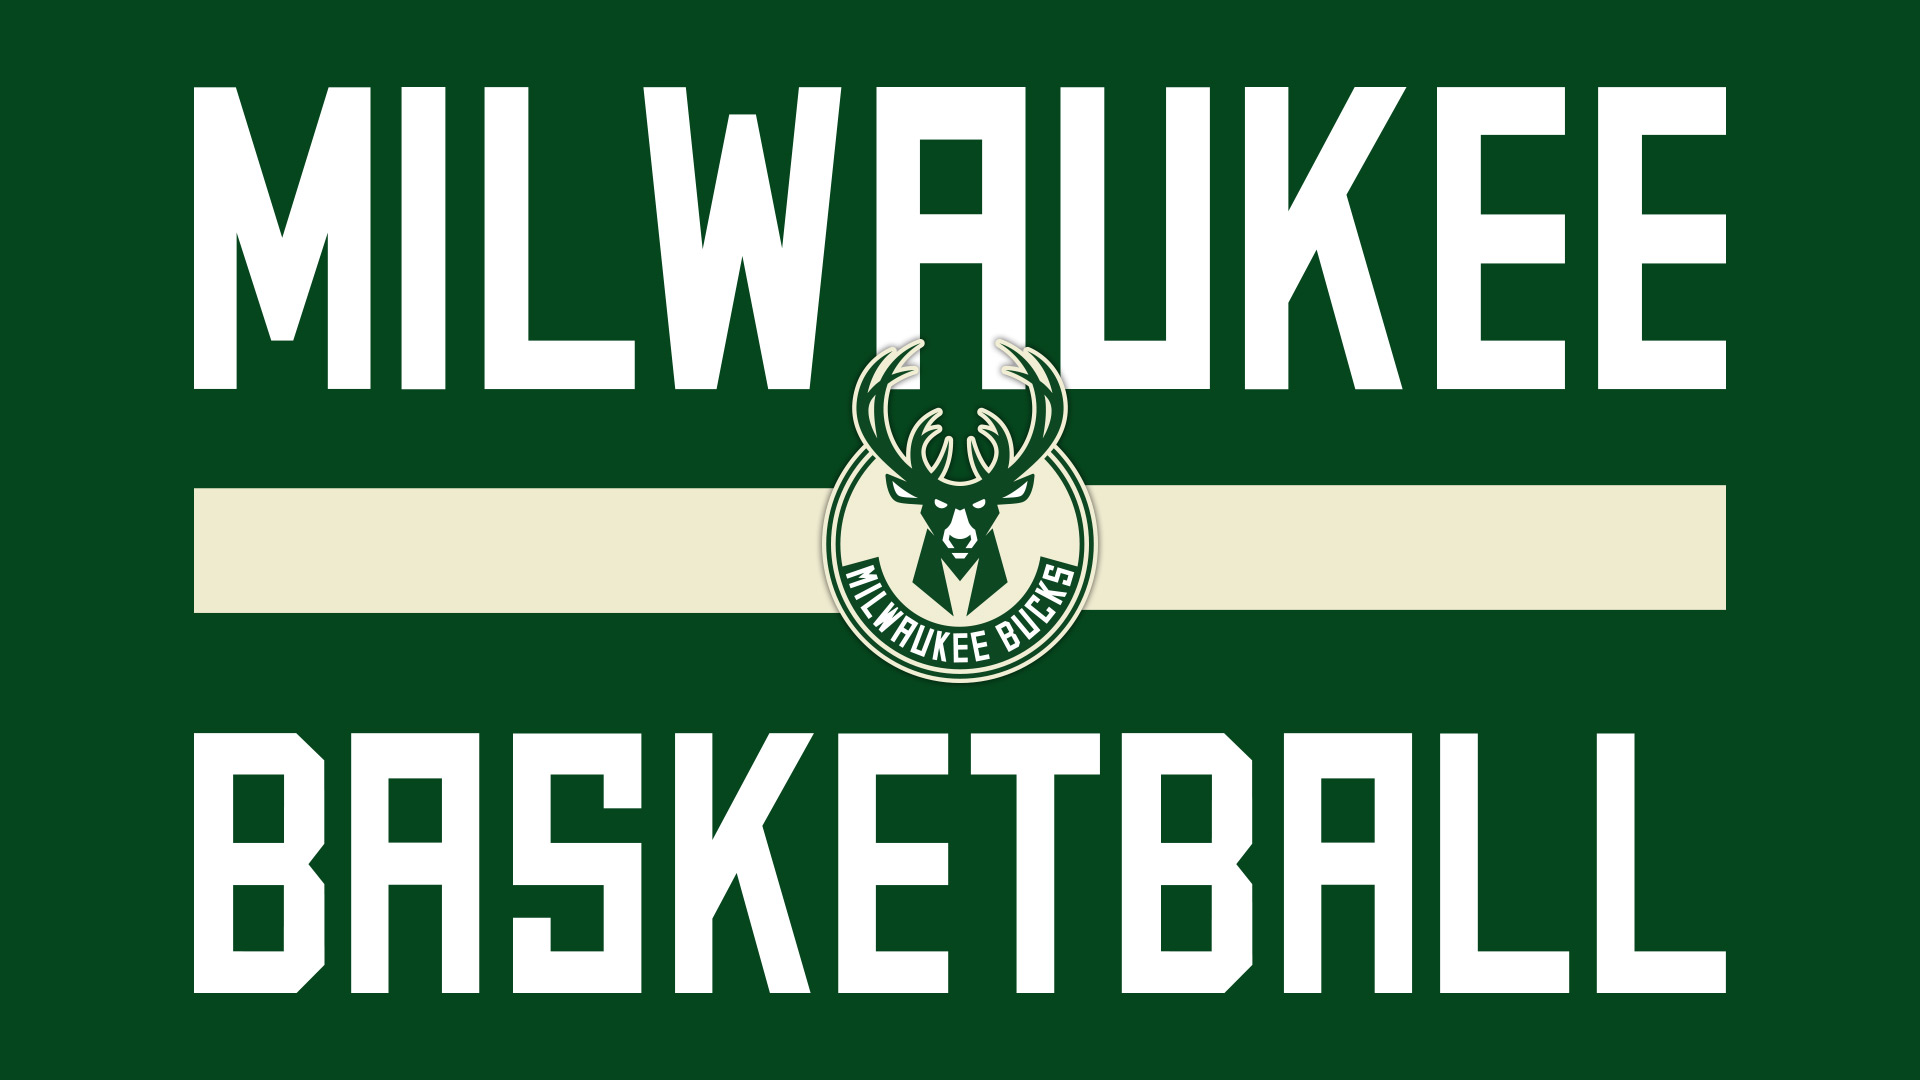 Bucks Backgrounds and Wallpapers Milwaukee Bucks 1920x1080